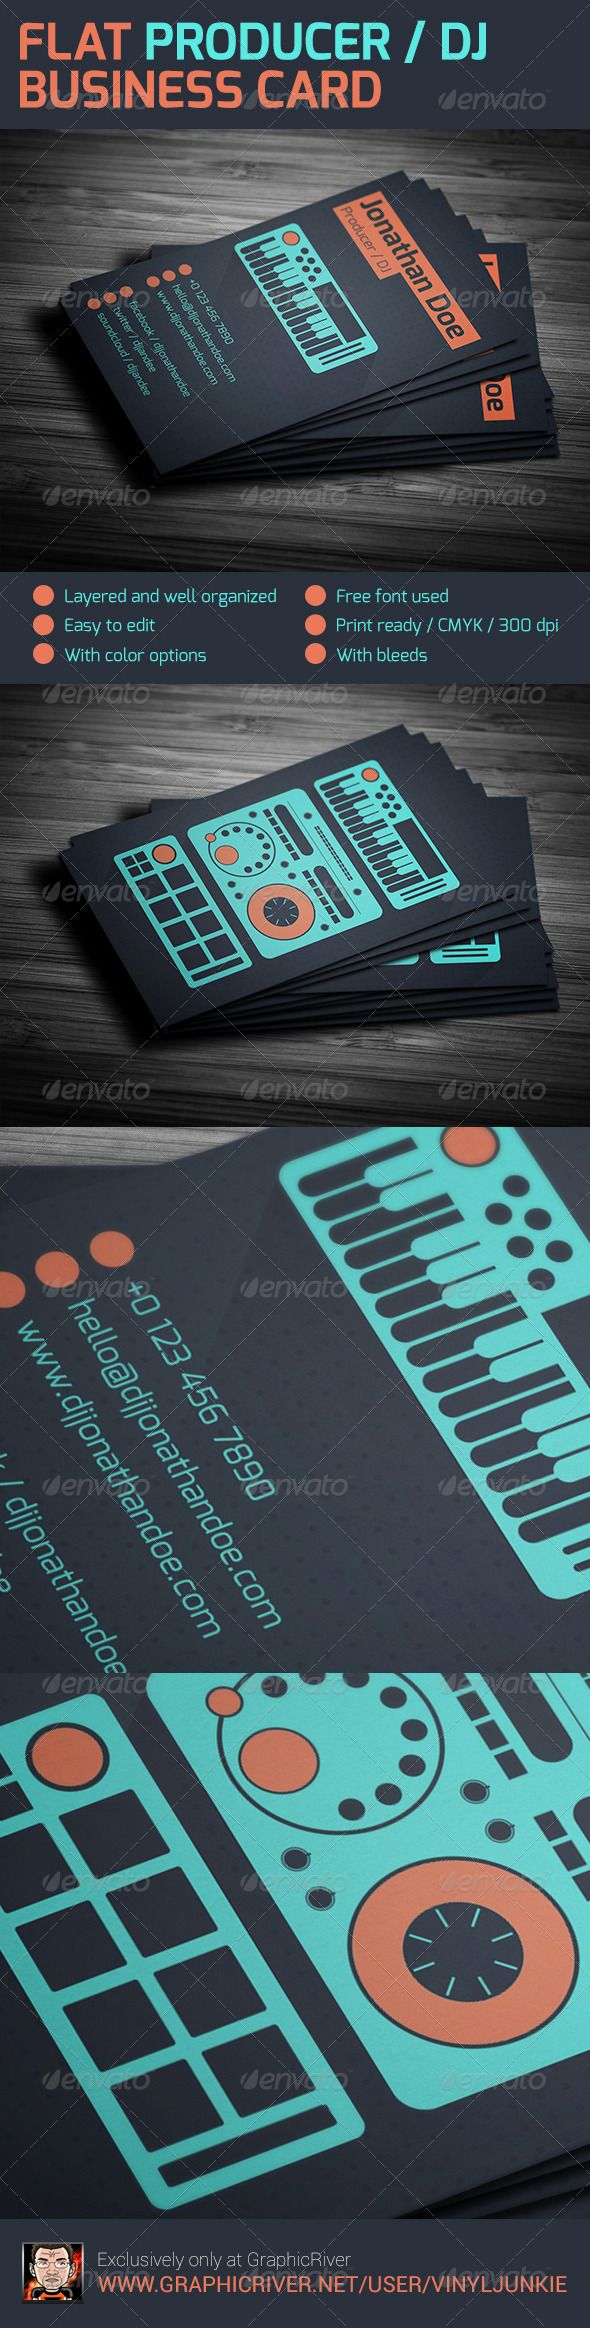 Flat producer dj business card